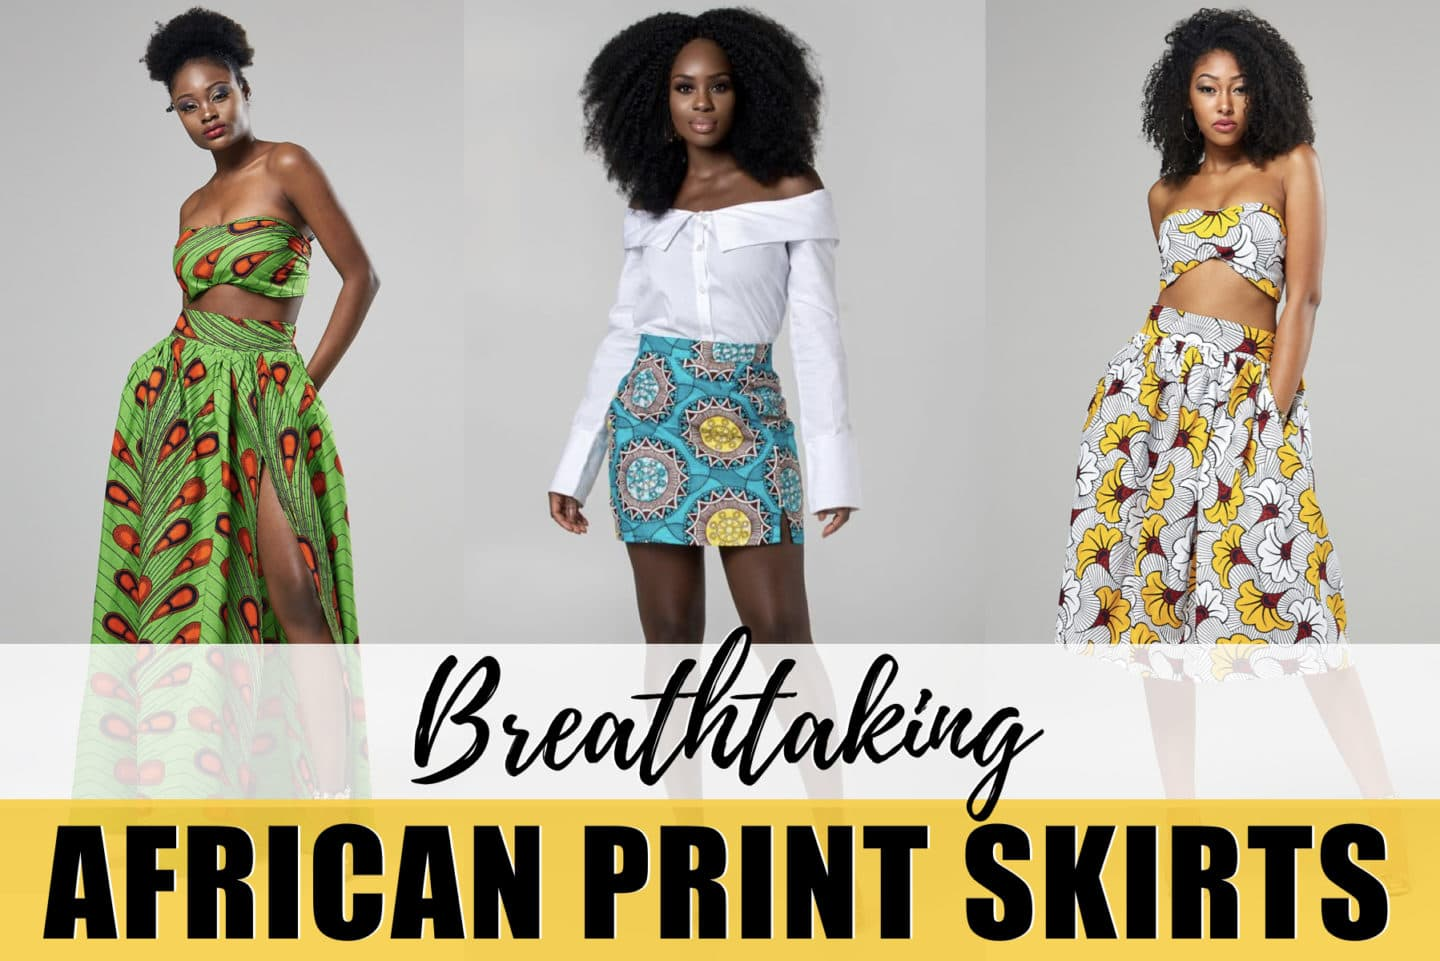 57813cec7c An epic roundup of almost 25 ankara skirts and other African print styles  in fashion.